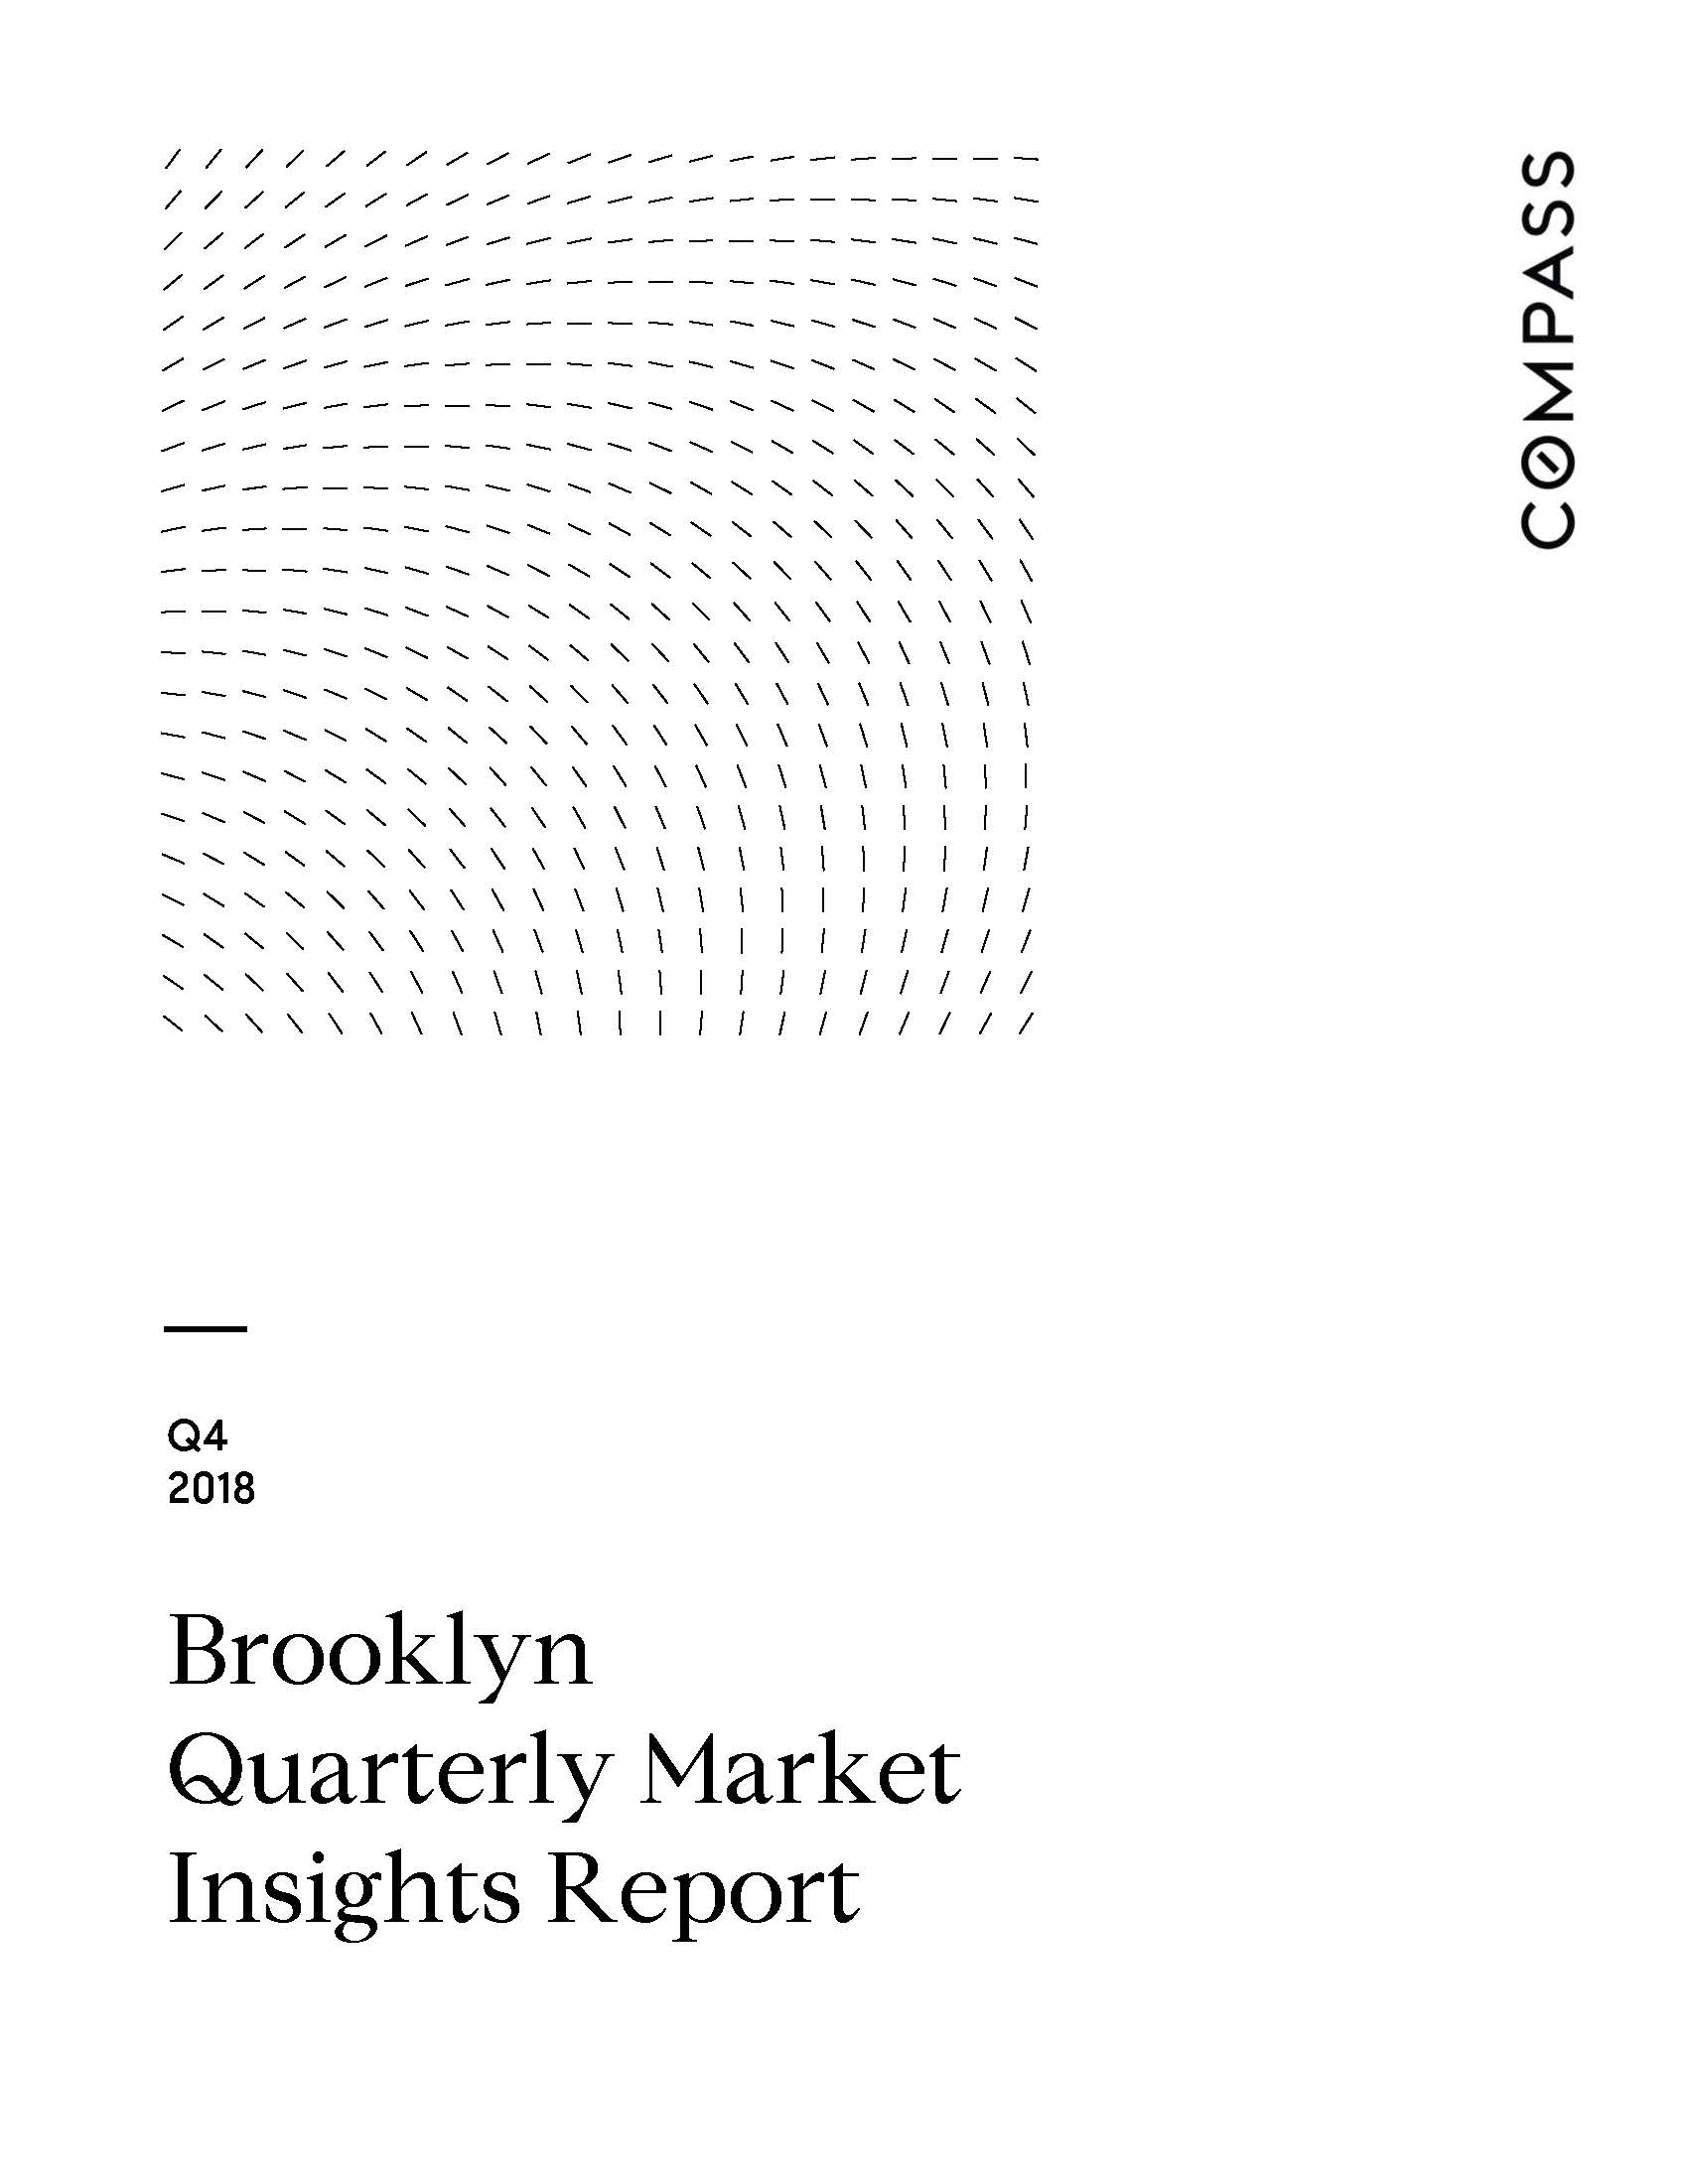 Brooklyn Quarterly Market Insights Report - Q4 2018